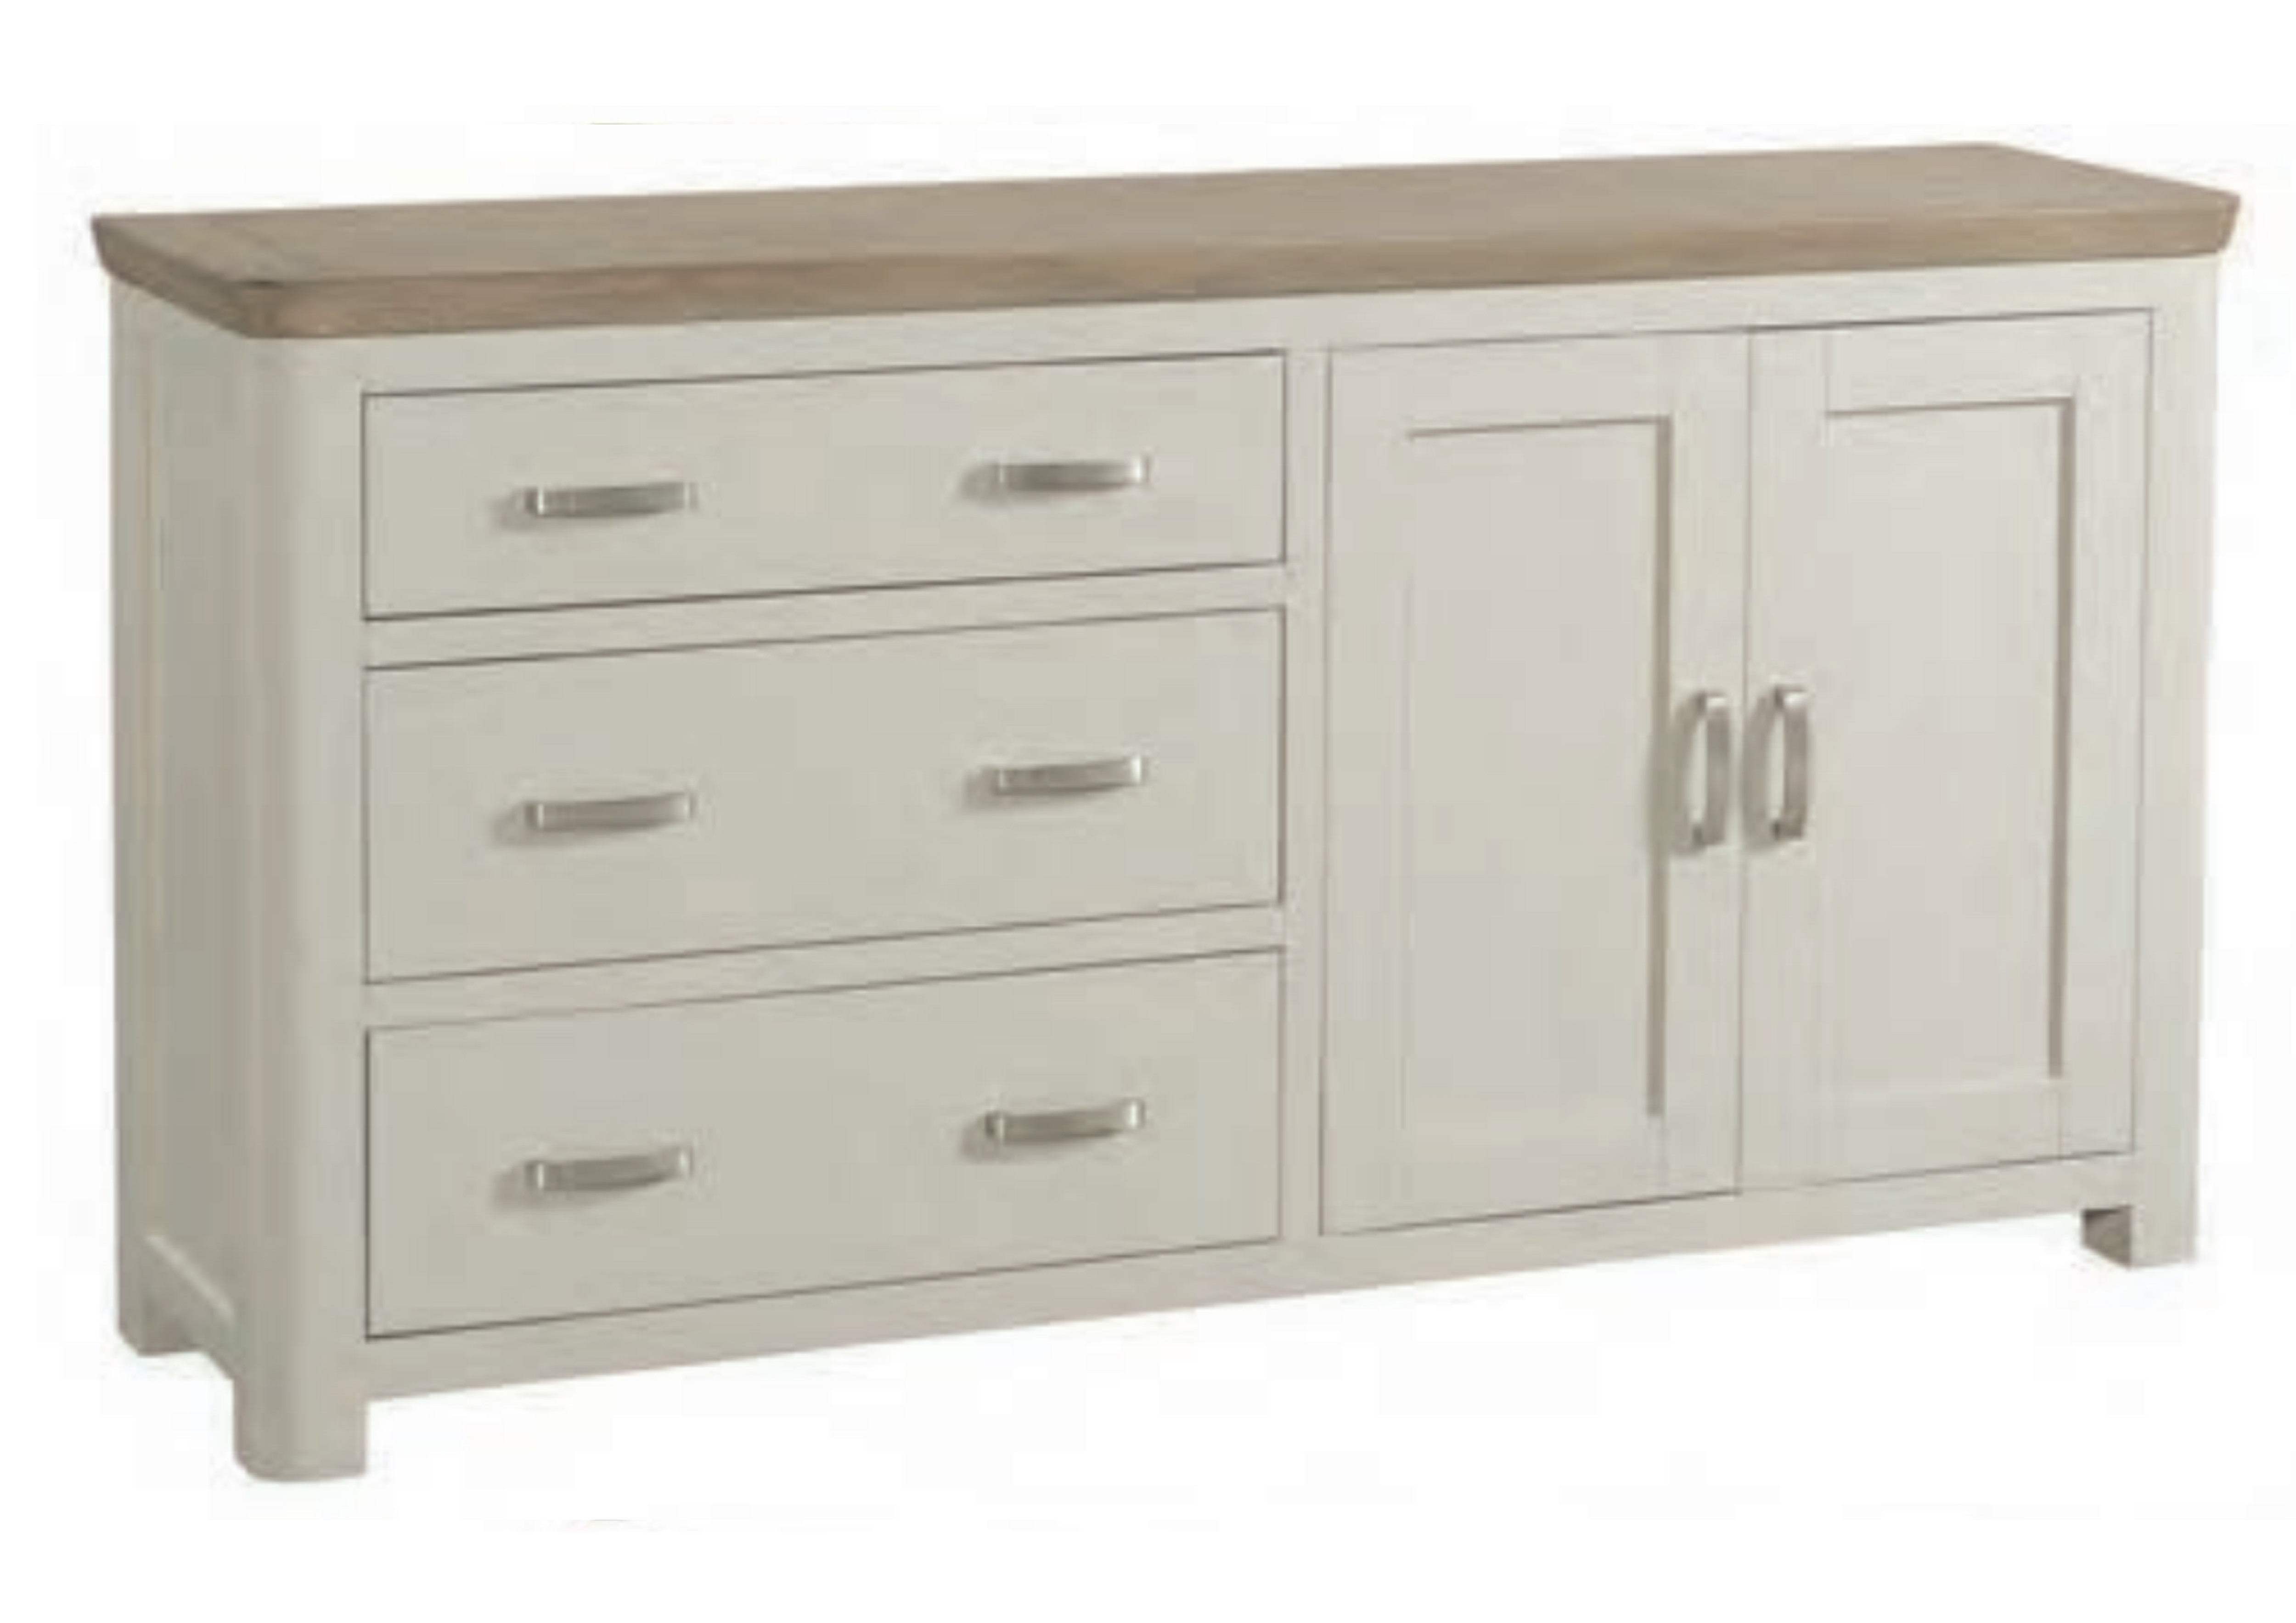 Treviso Painted Large Sideboard Race Furniture Middlesbrough